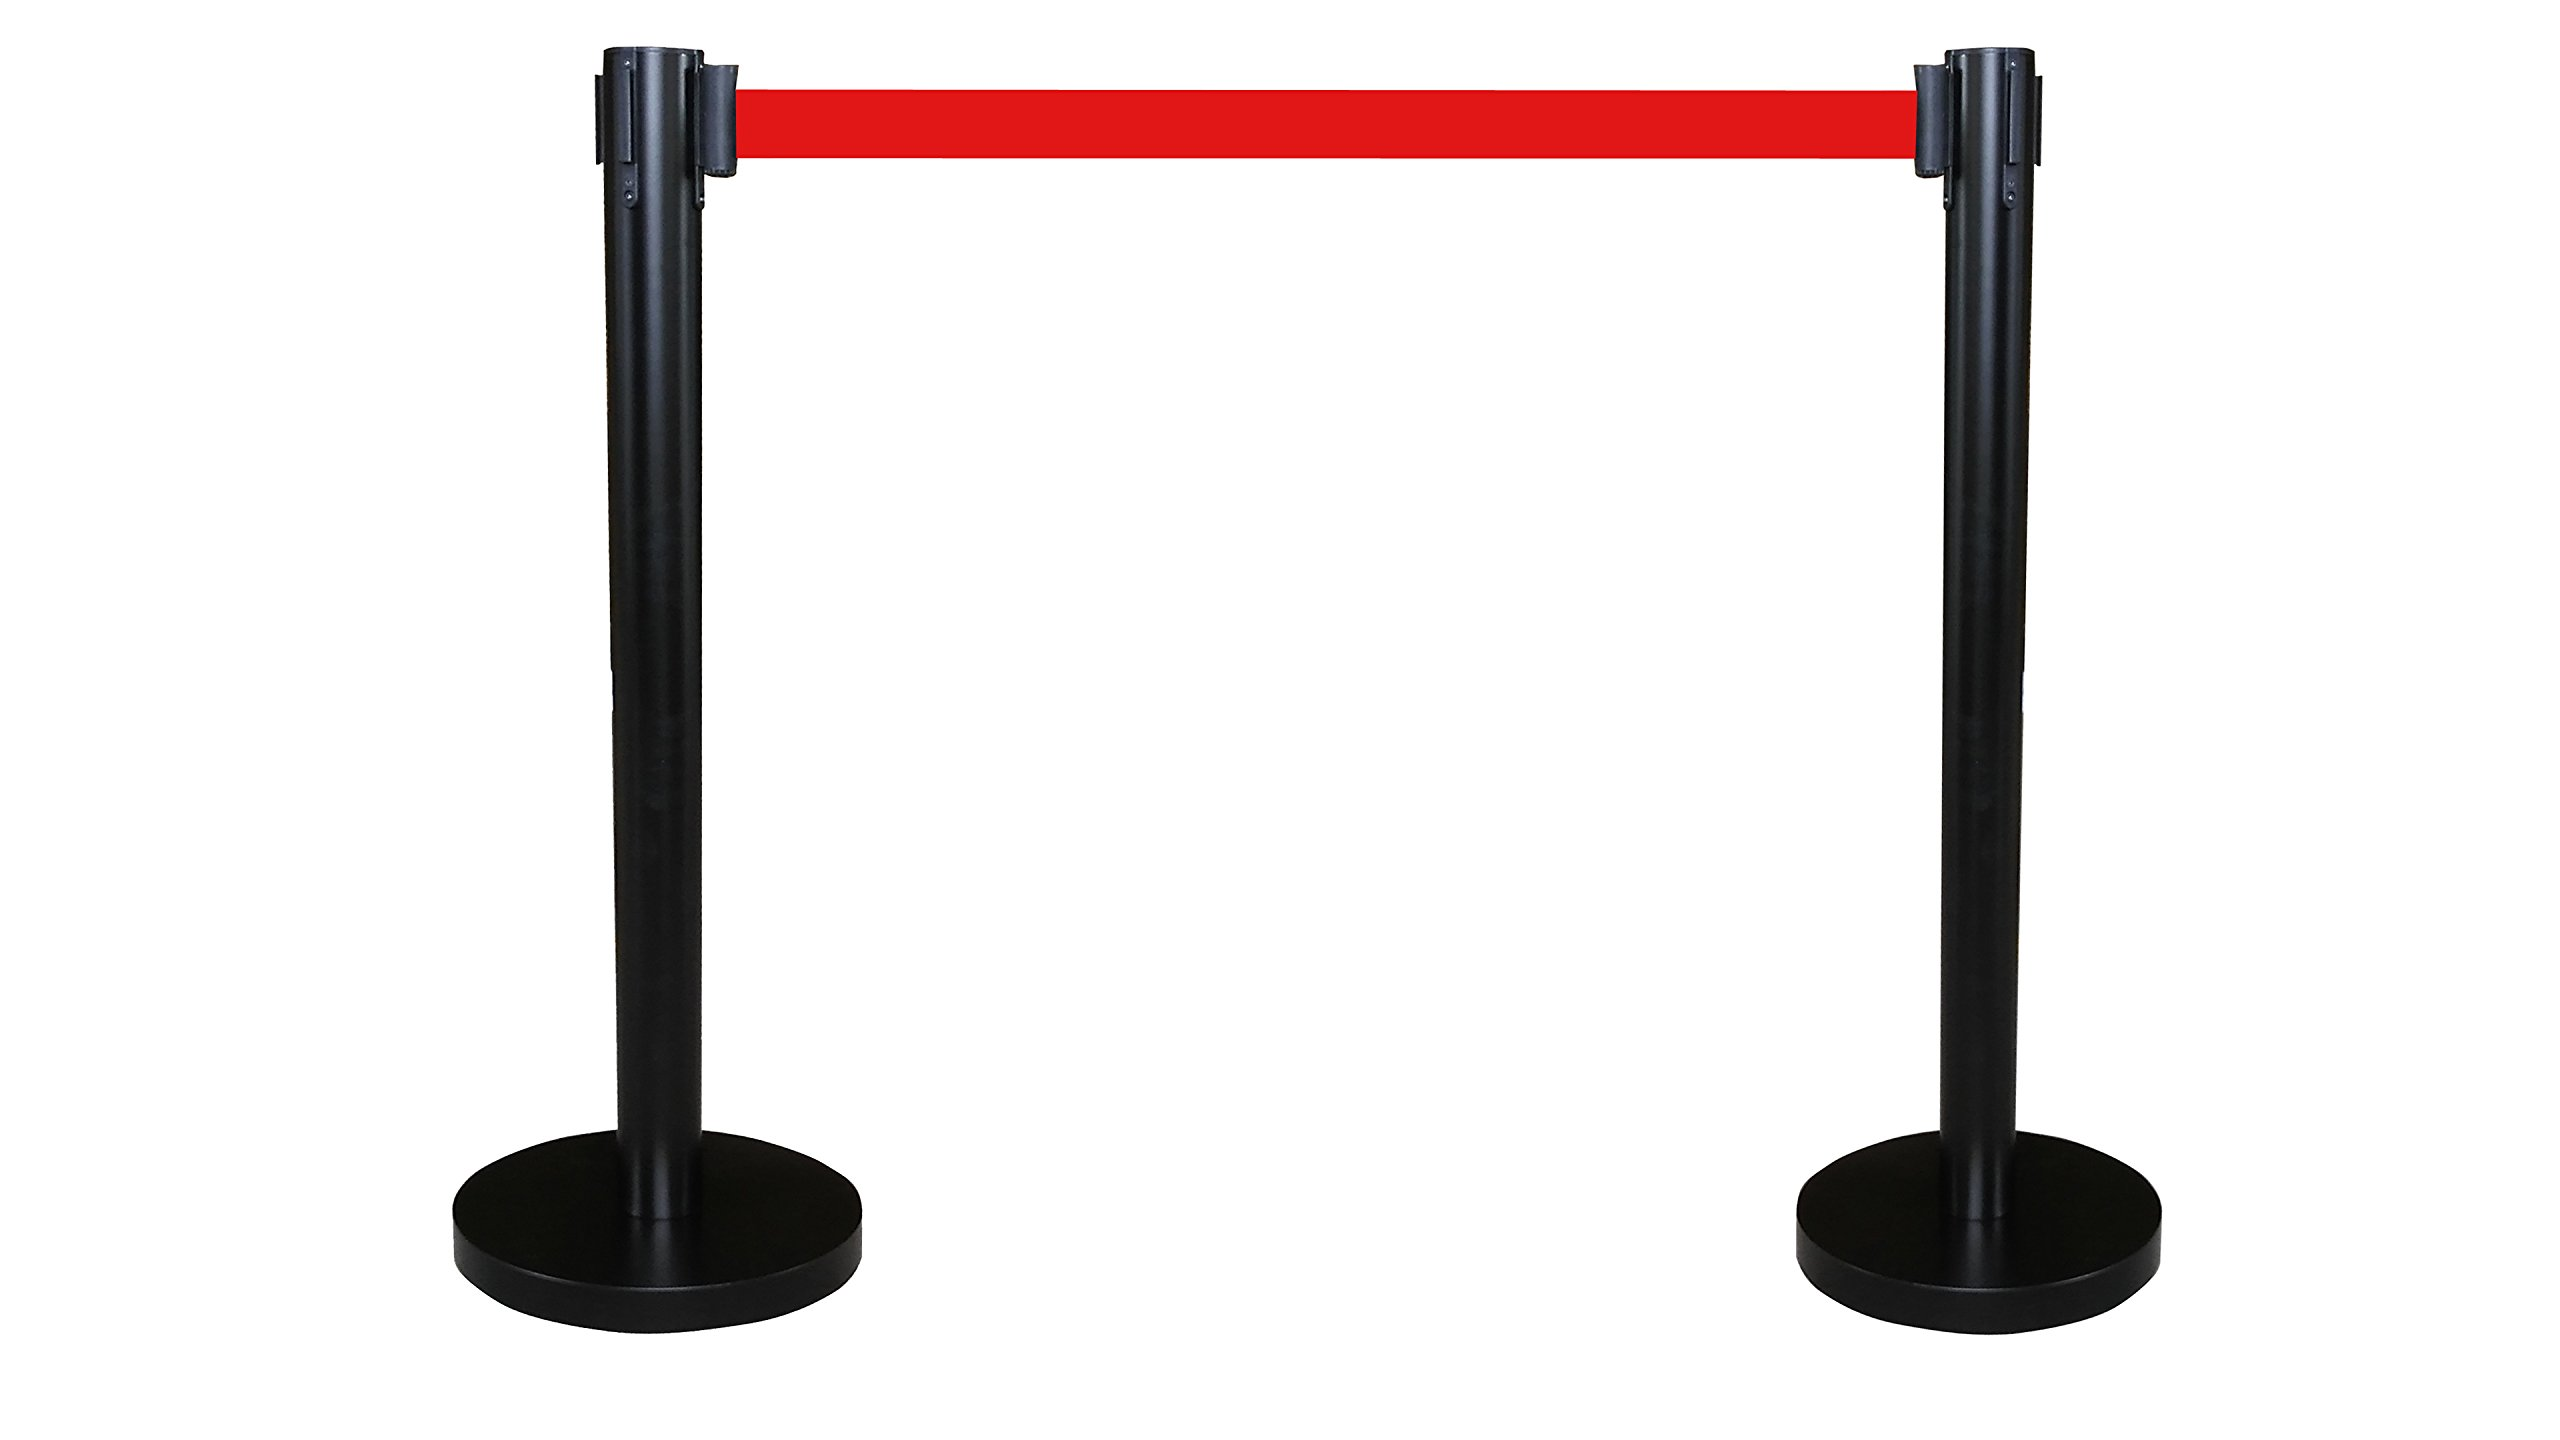 FixtureDisplays Black Crowd Control Stanchion Queue Barrier Post RED Strap 78'' Retractable 12004-10-2PK